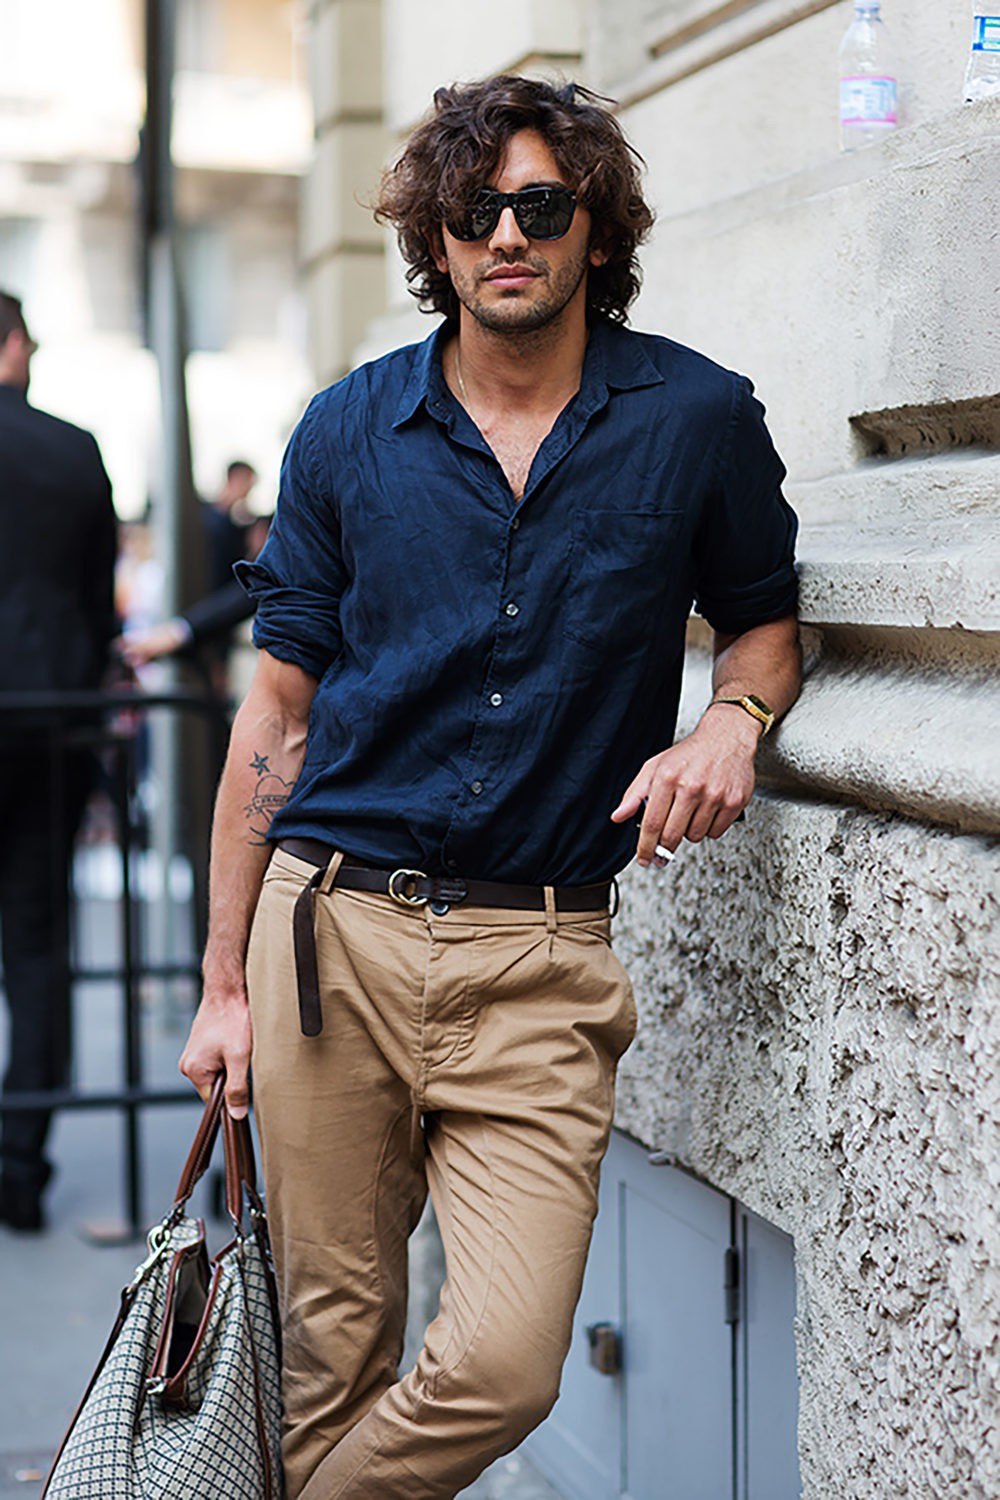 Navy blue shirt style, street fashion, casual wear, dress shirt, navy blue, t shirt